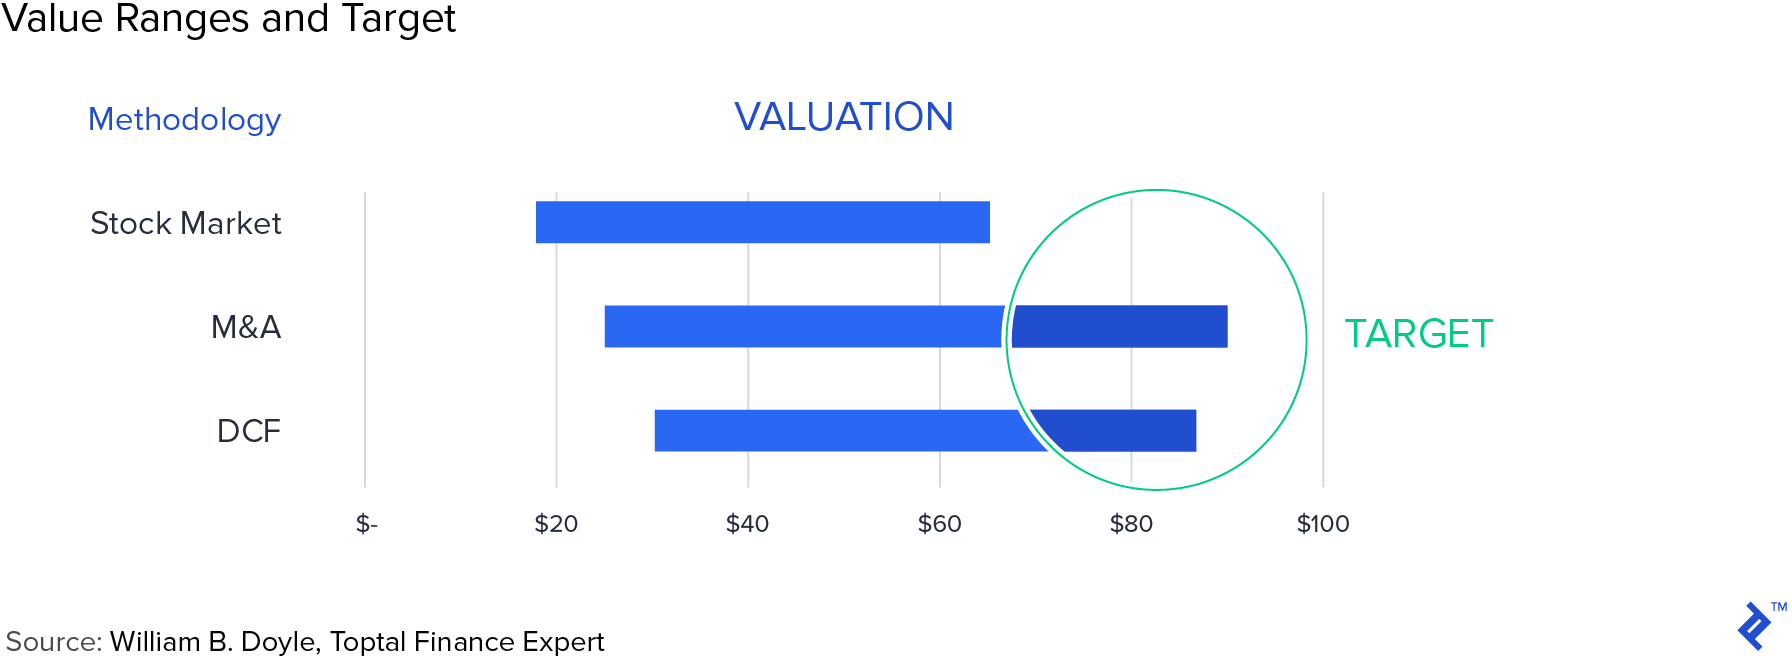 Value ranges and target